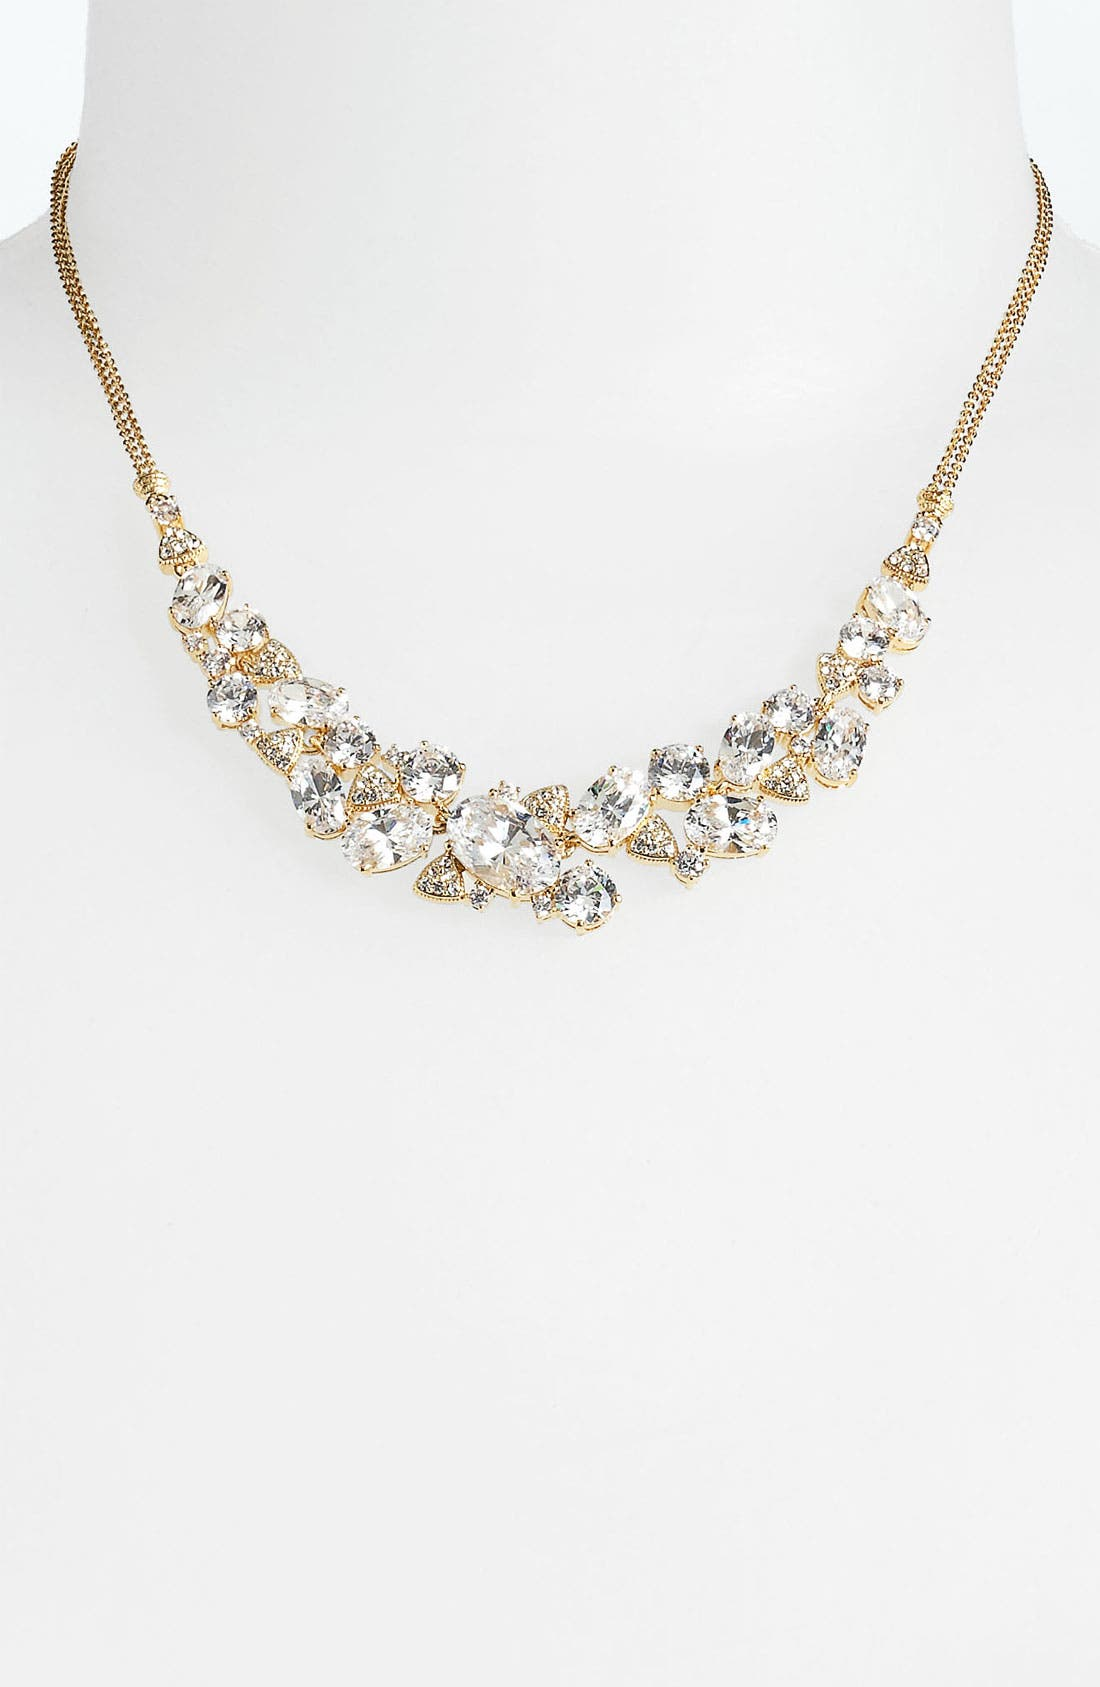 Alternate Image 1 Selected - Nadri Cubic Zirconia Cluster Frontal Necklace (Nordstrom Exclusive)